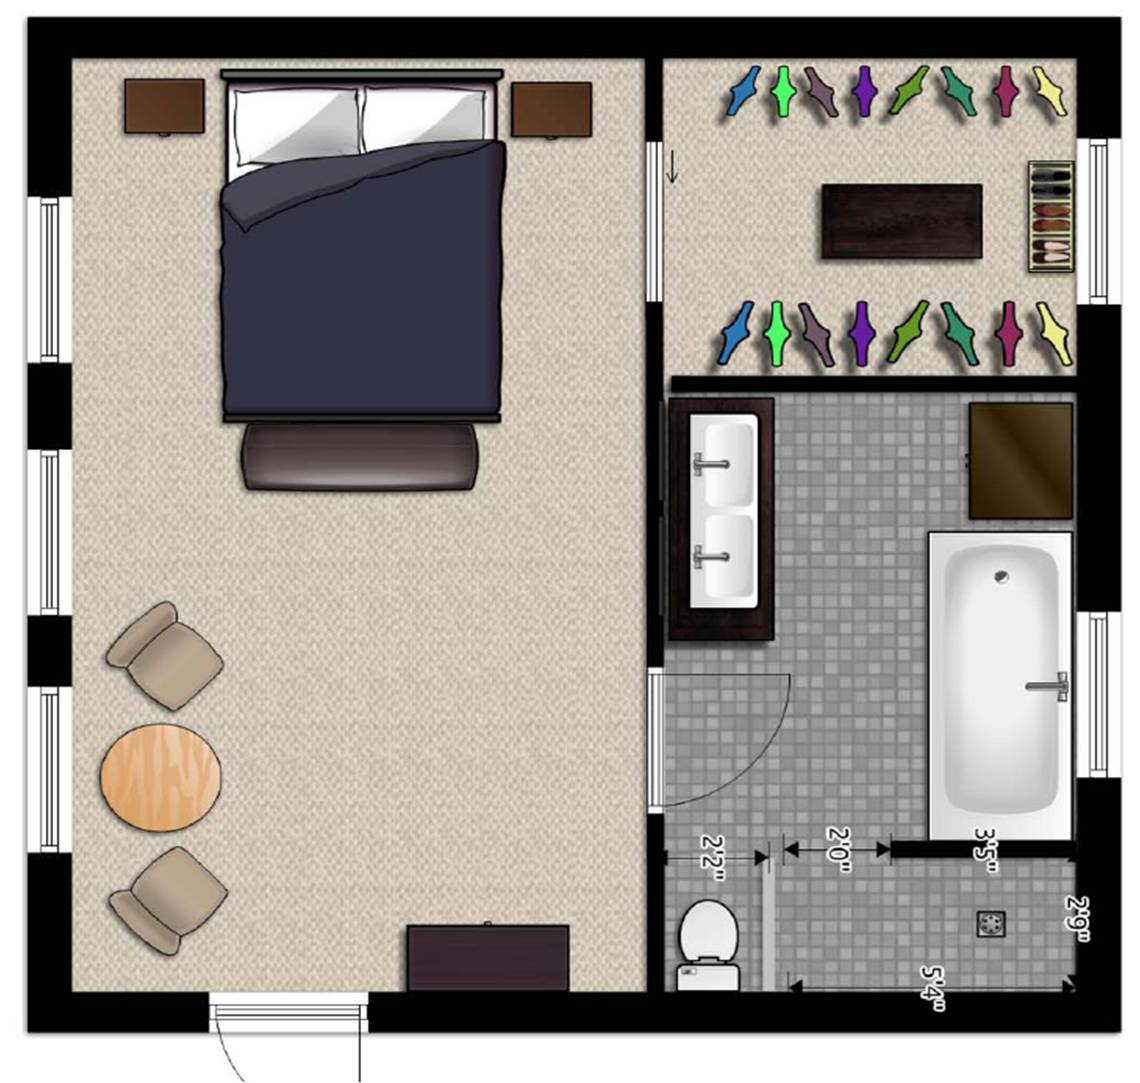 Inspire admire and design next renovation project master suite addition Master bedroom suite plans